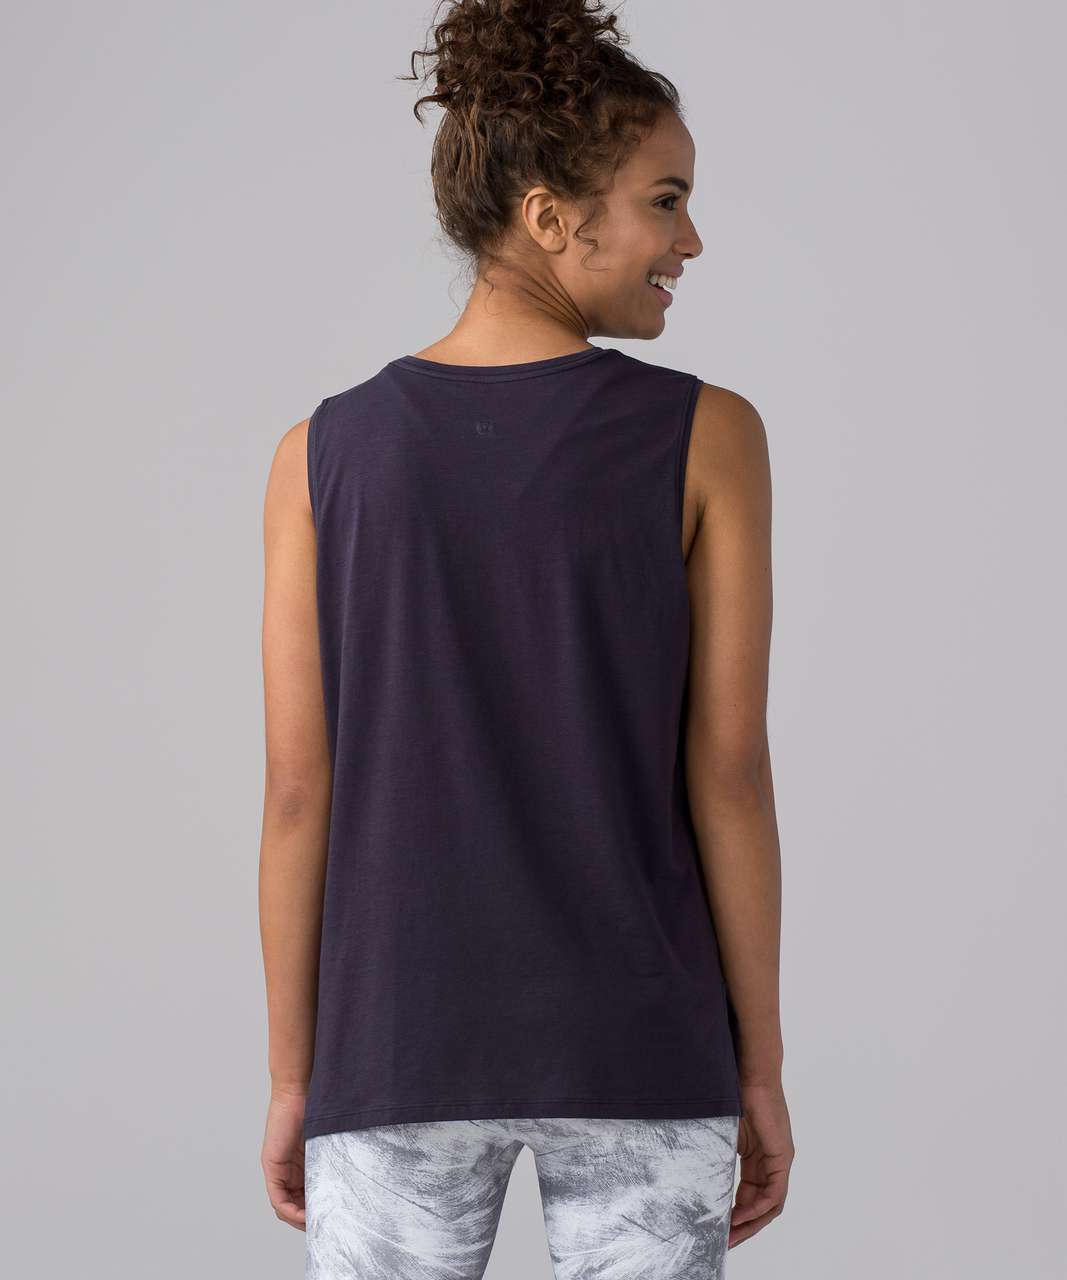 Lululemon Love Sleeveless Tank - Boysenberry